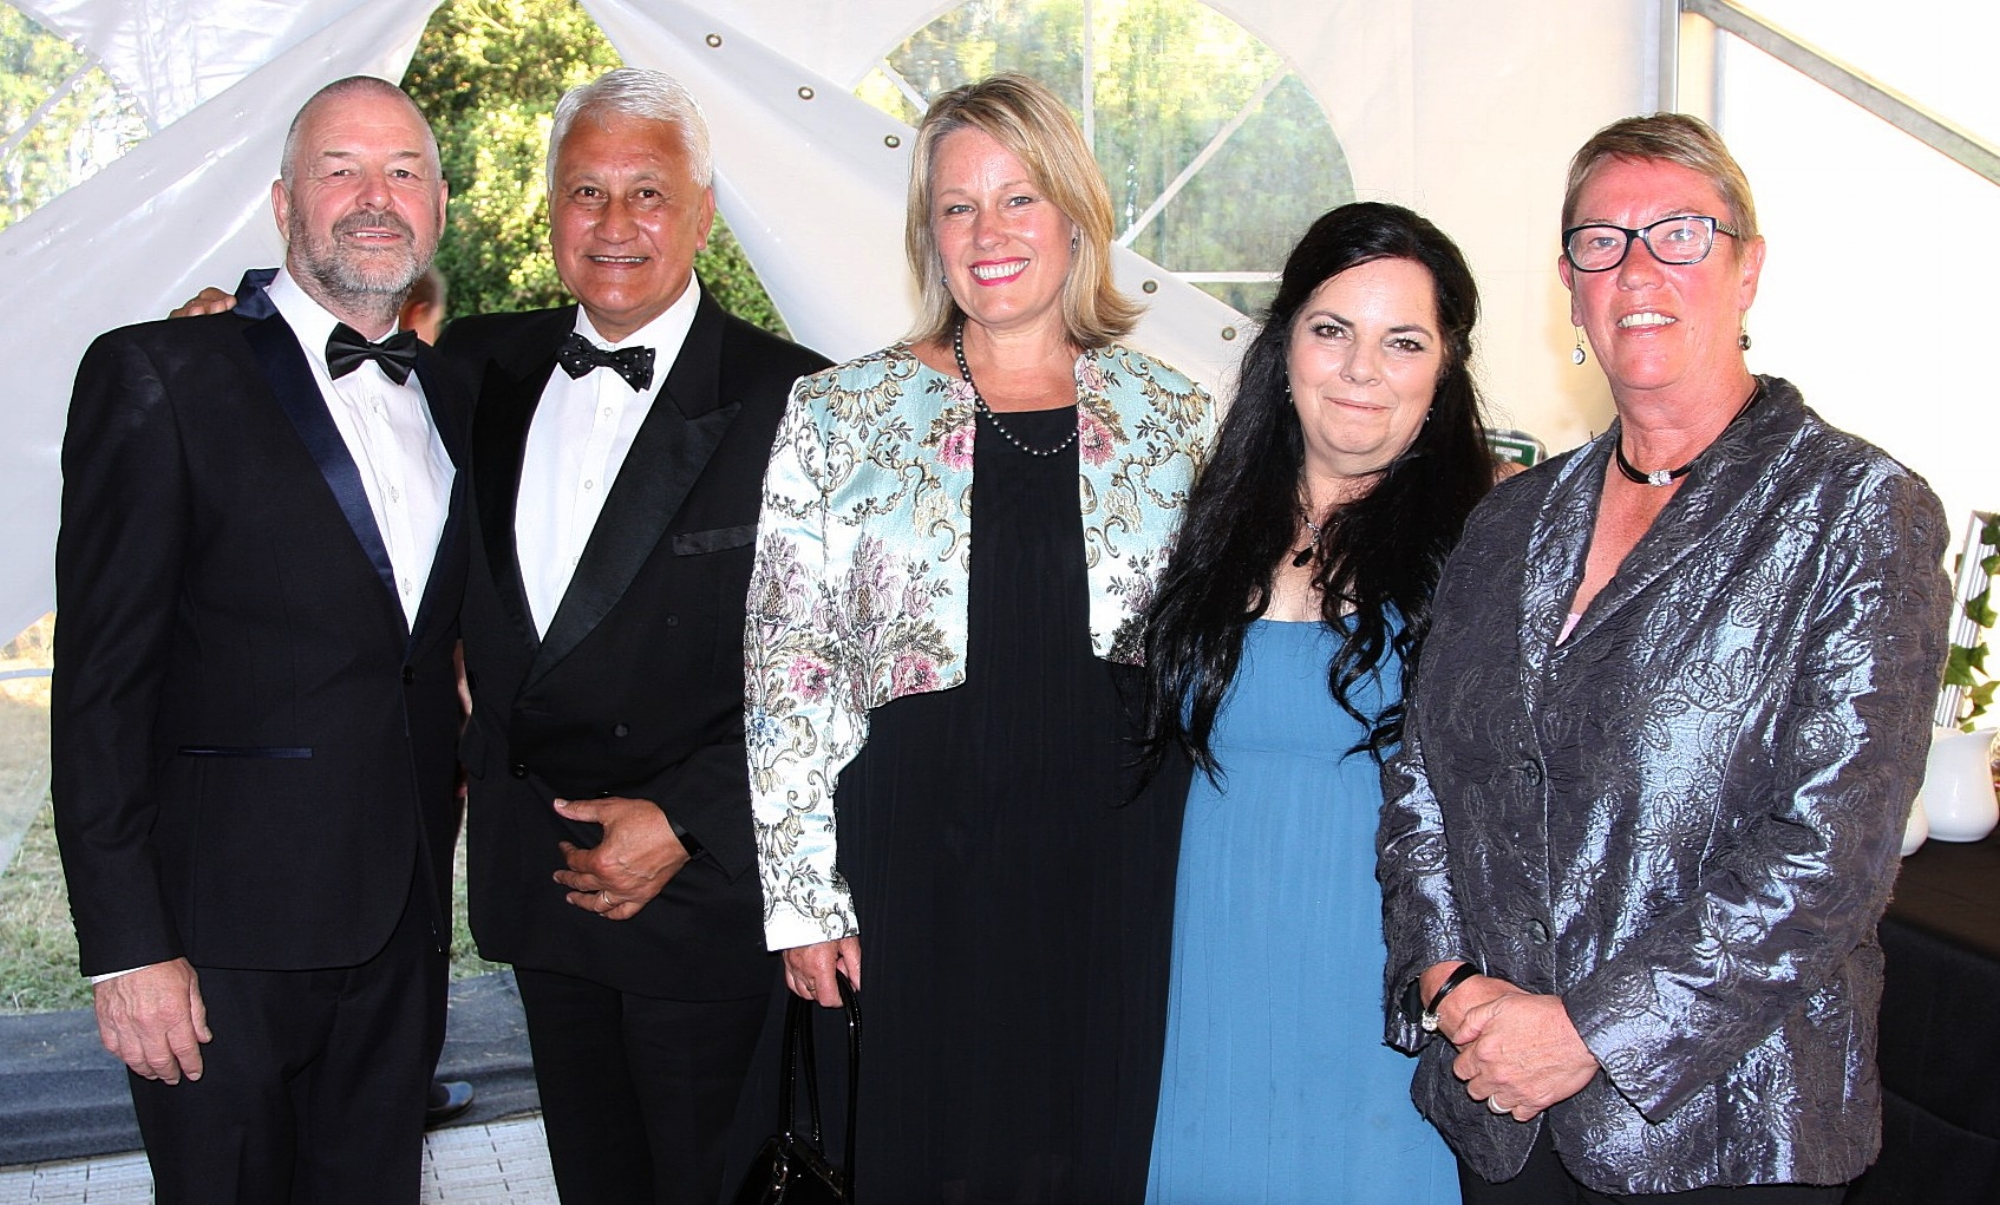 15 Year Happyhire Familial Trust Celebration Gala Dinner     Click on image to see more photos of the night